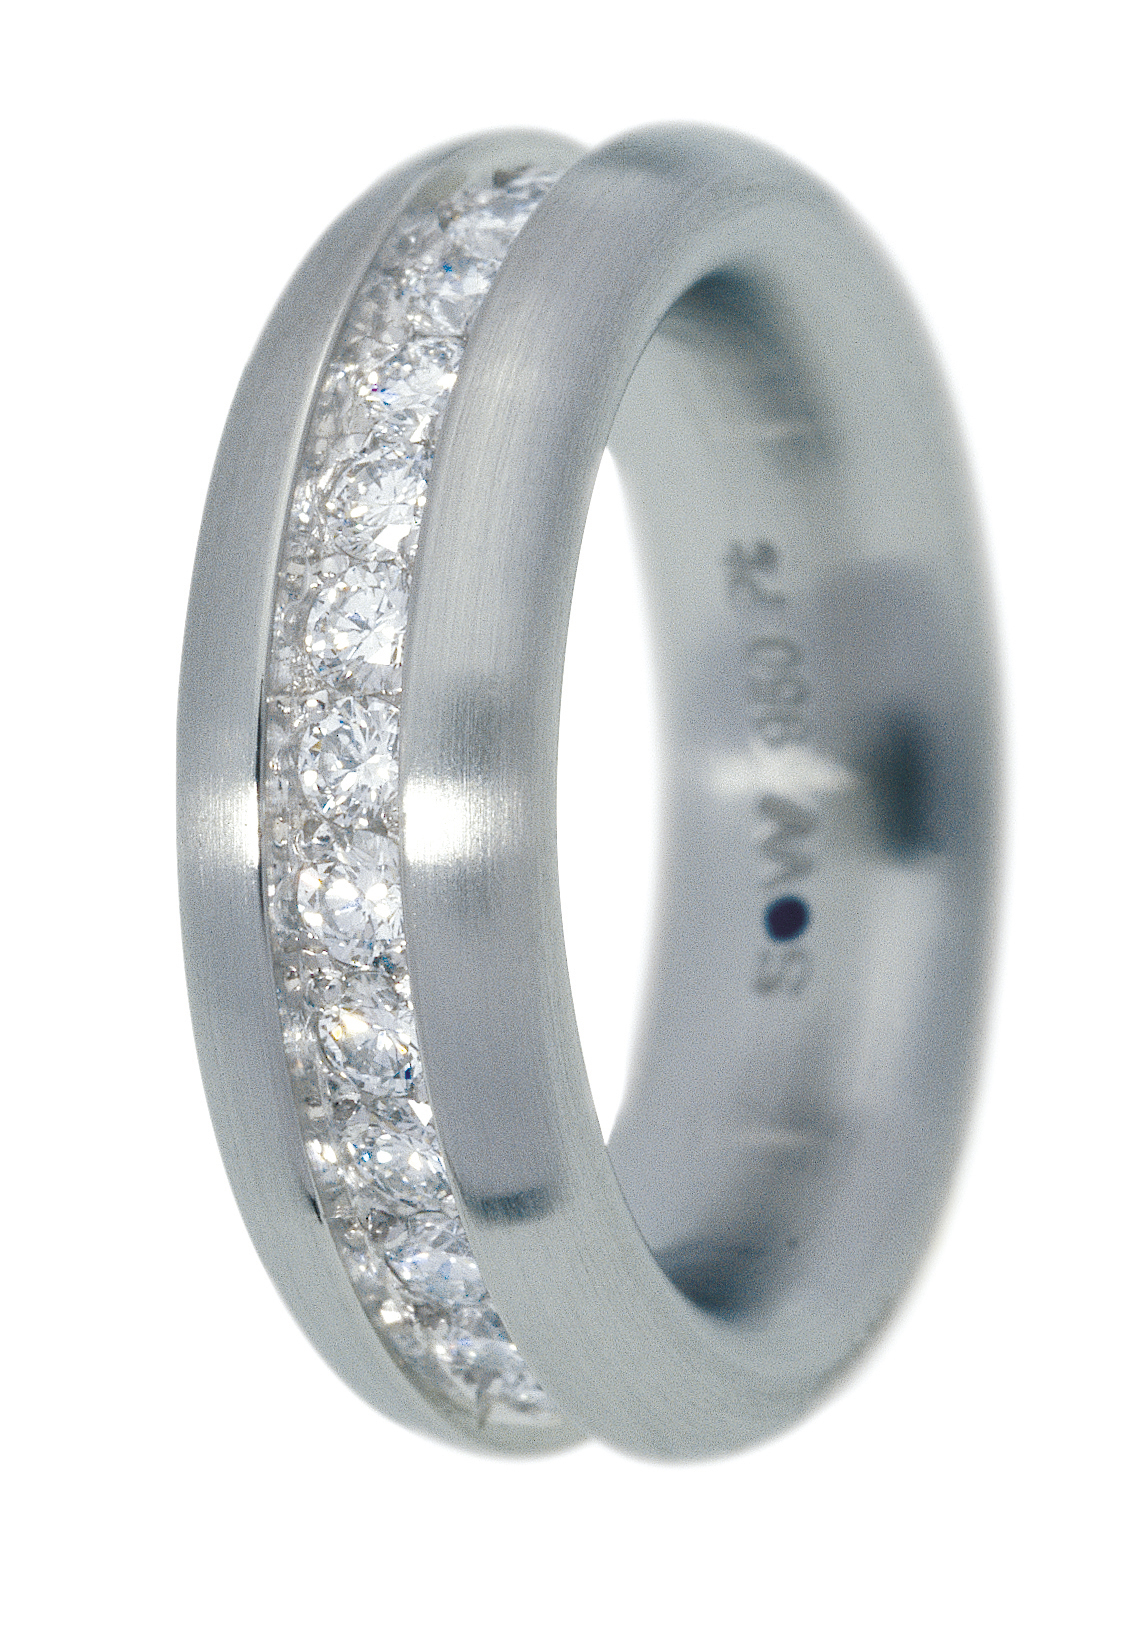 Bague en or blanc brossé 33 diamants